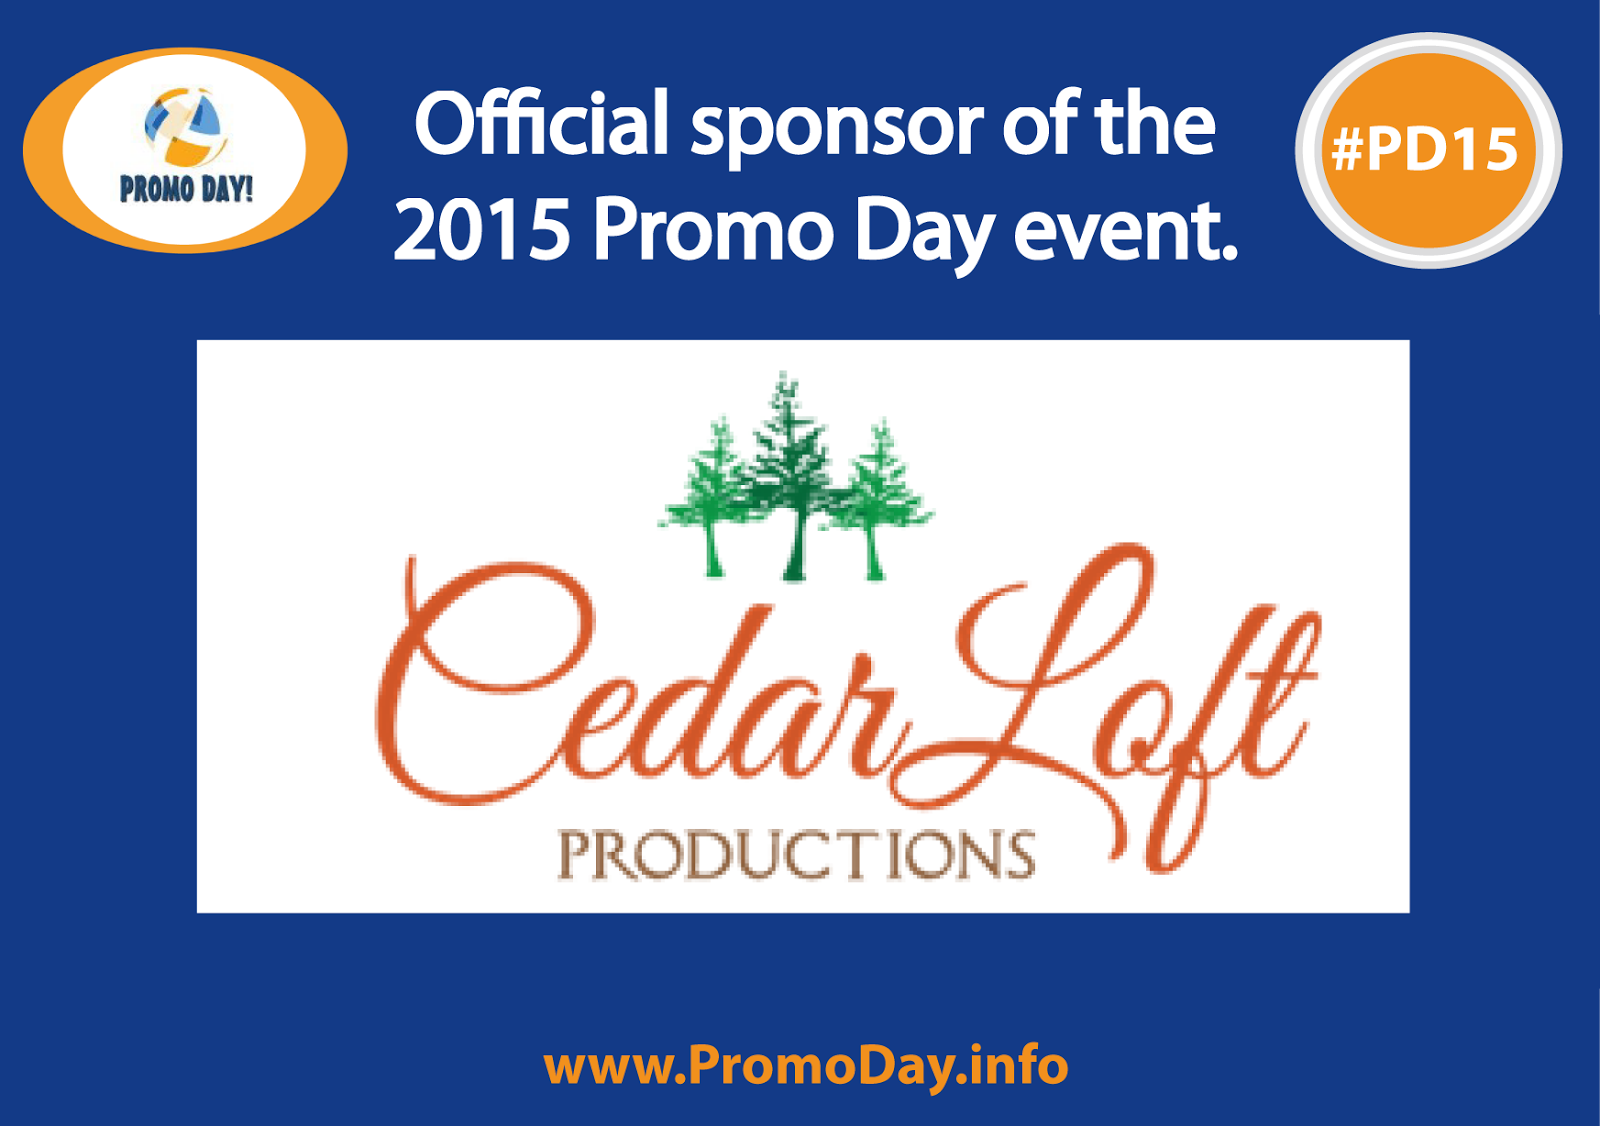 Meet the #PD15 Sponsors, Cedar Loft Productions, www.PromoDay.info